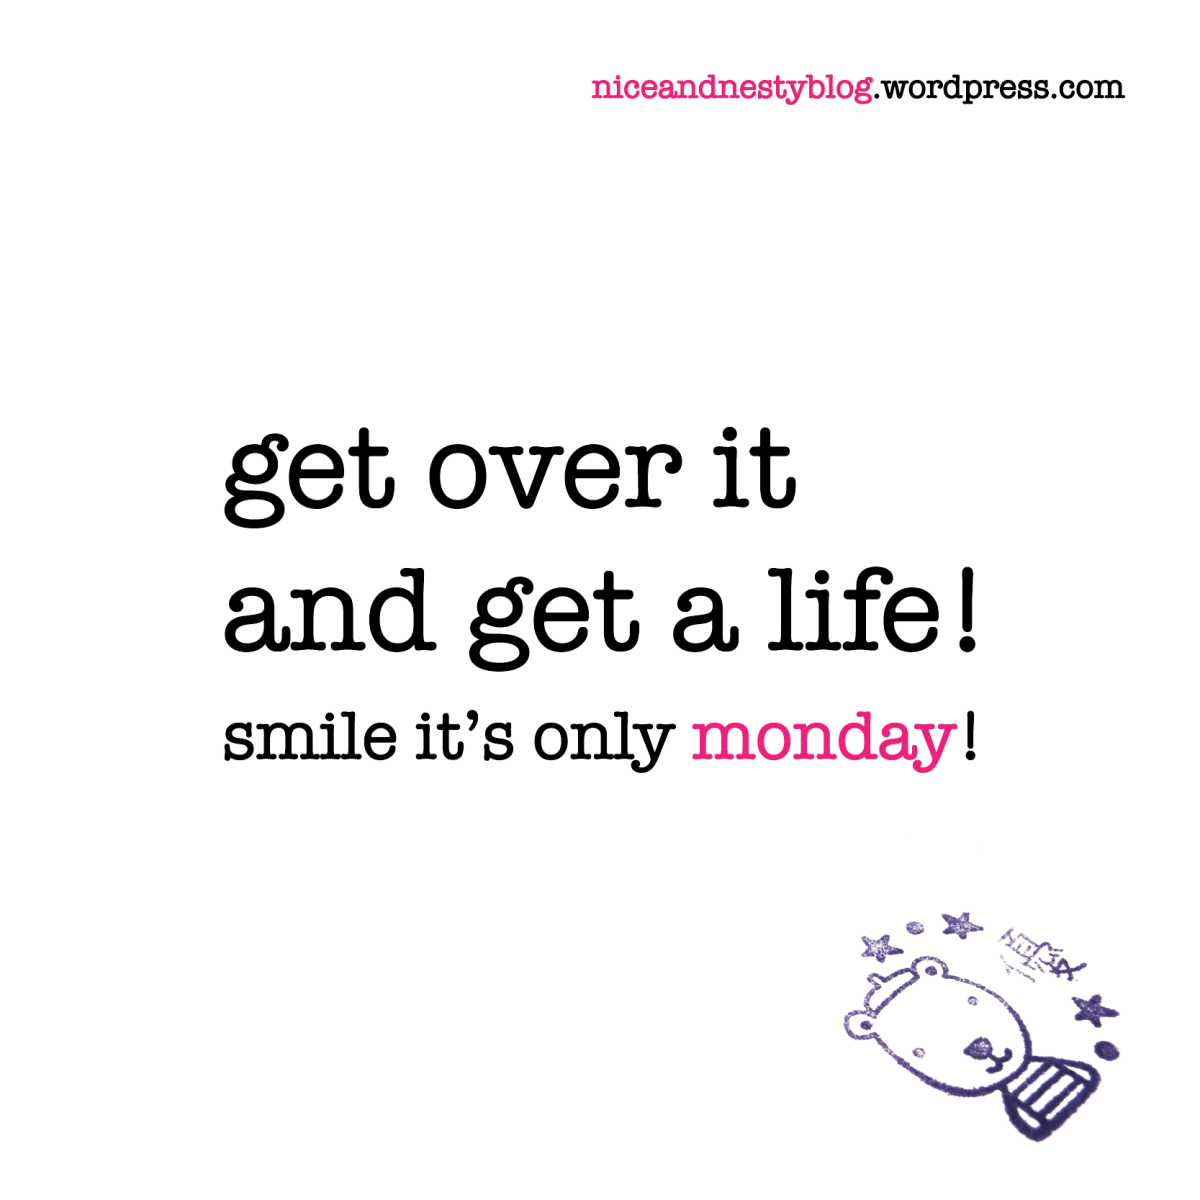 Get A Life Quotes Get Over It And Get A Life Get Over Life Monday Quote